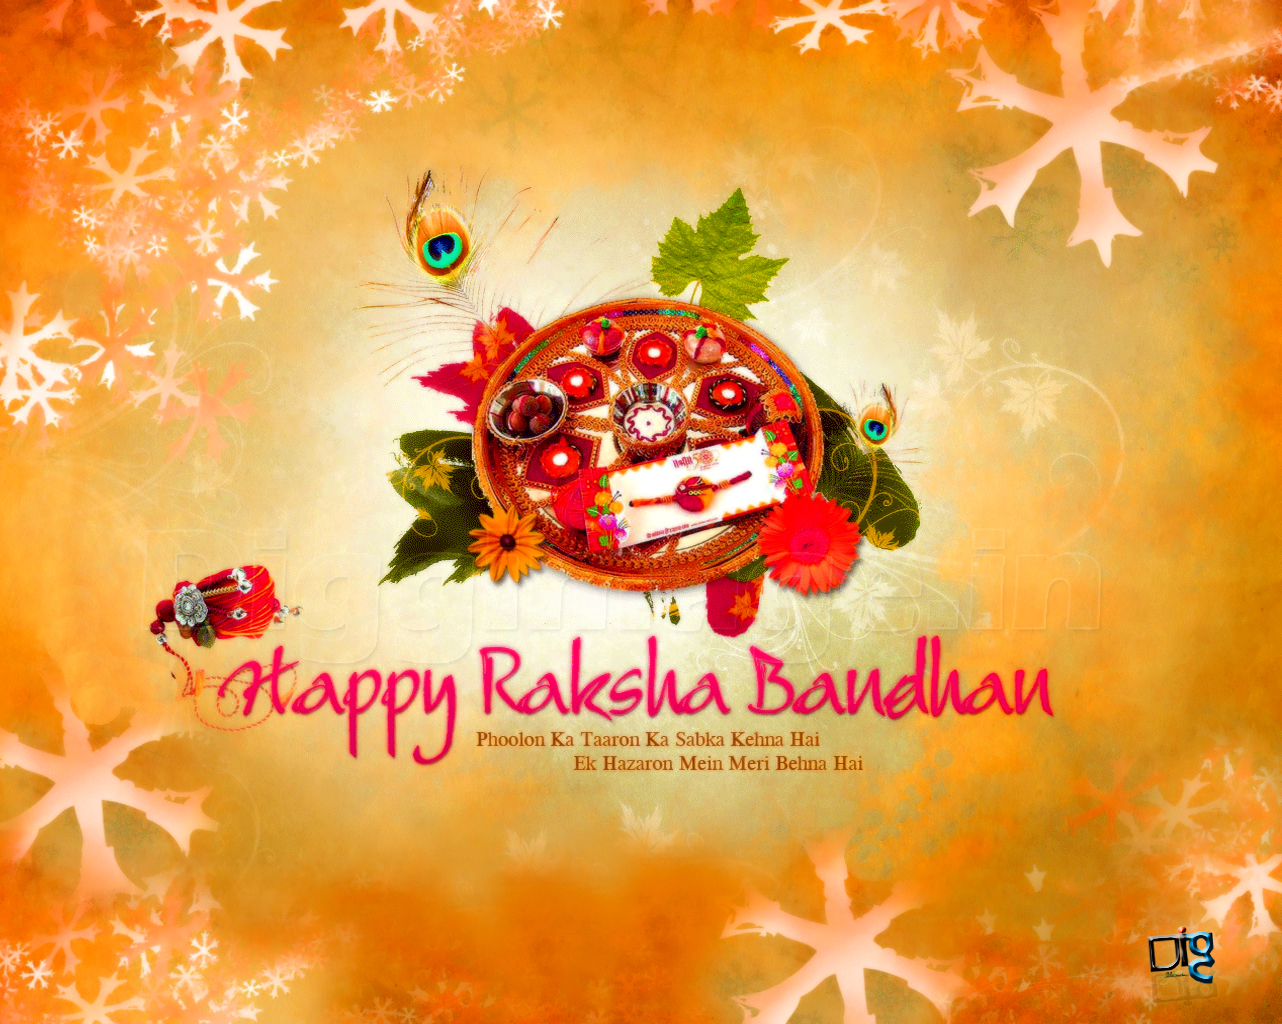 raksha bandhan essay in hindi language